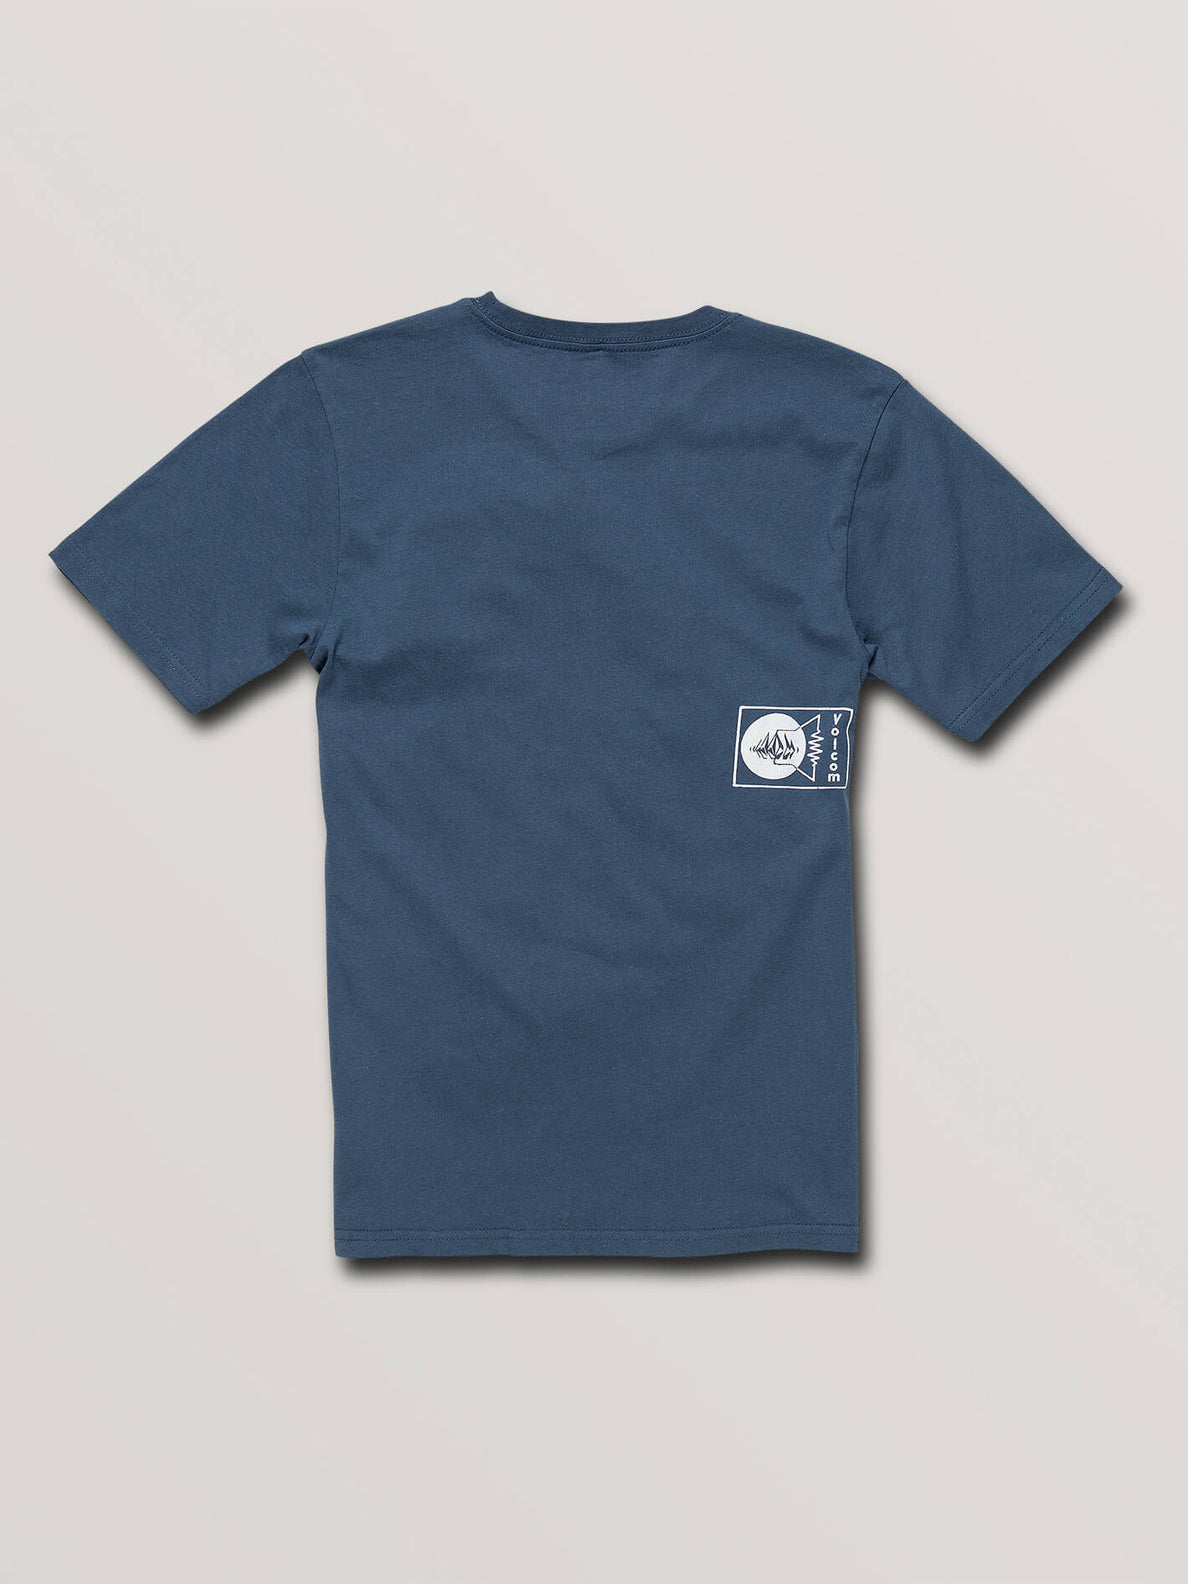 Big Boys Audio Waves Short Sleeve Tee In Indigo, Back View